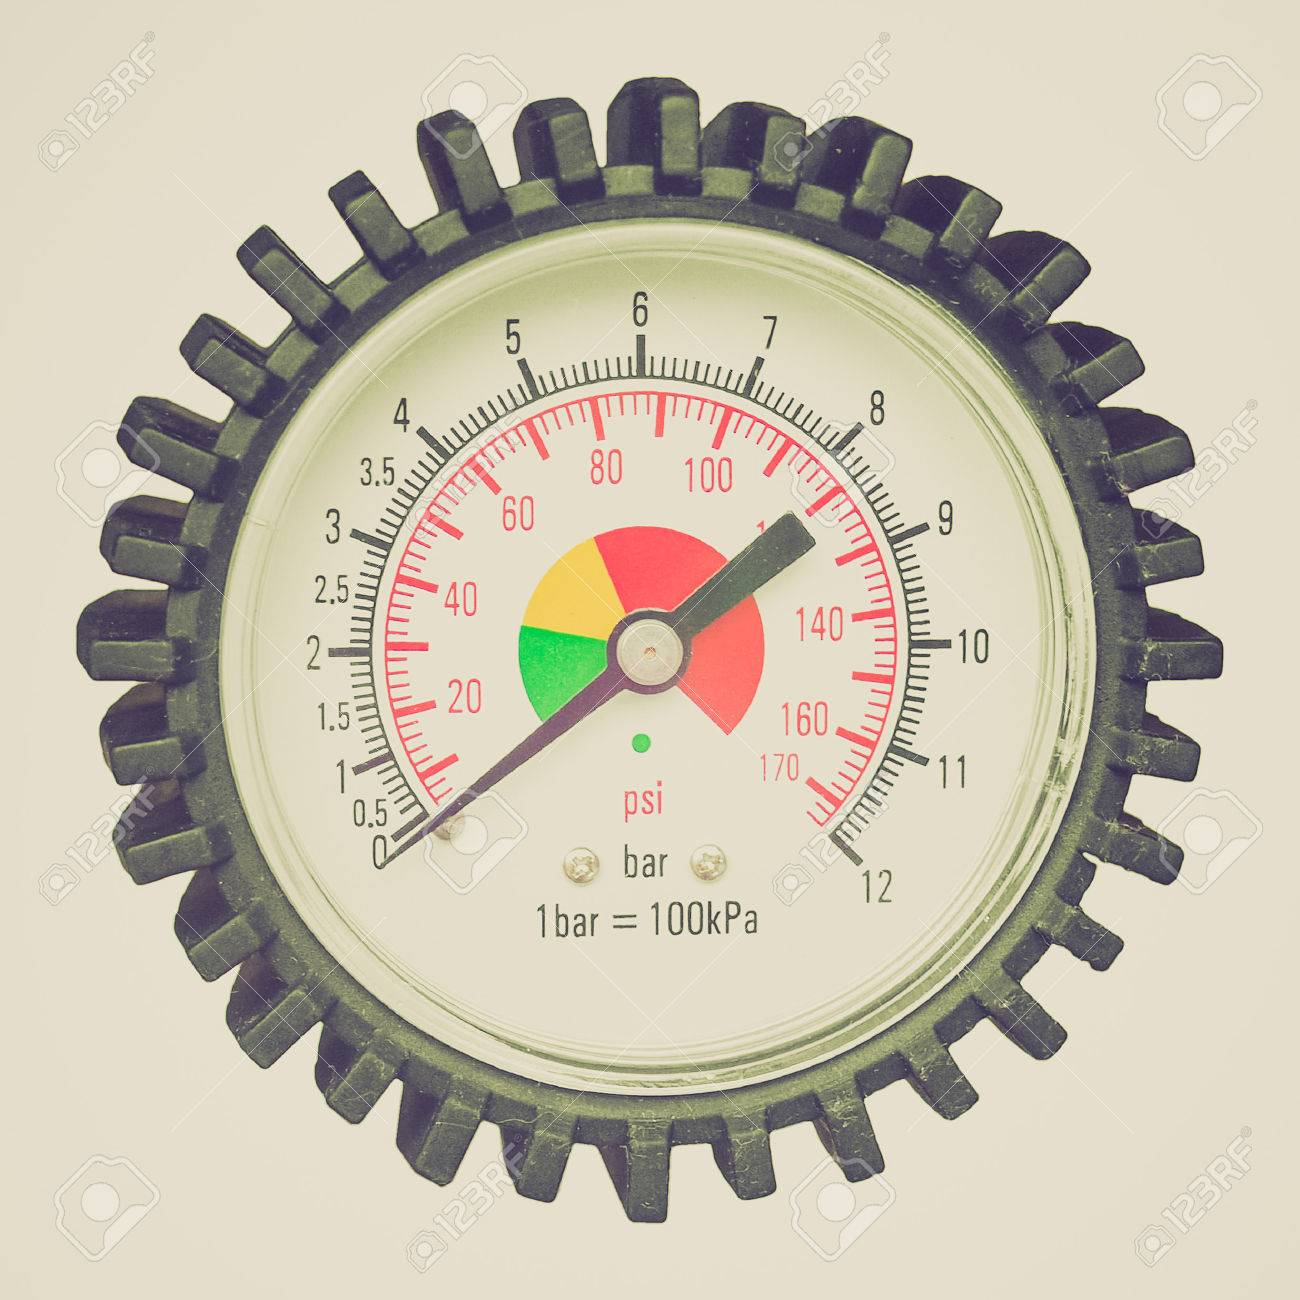 Vintage Looking Manometer Instrument For The Measurement Of Pressure And Vacuum